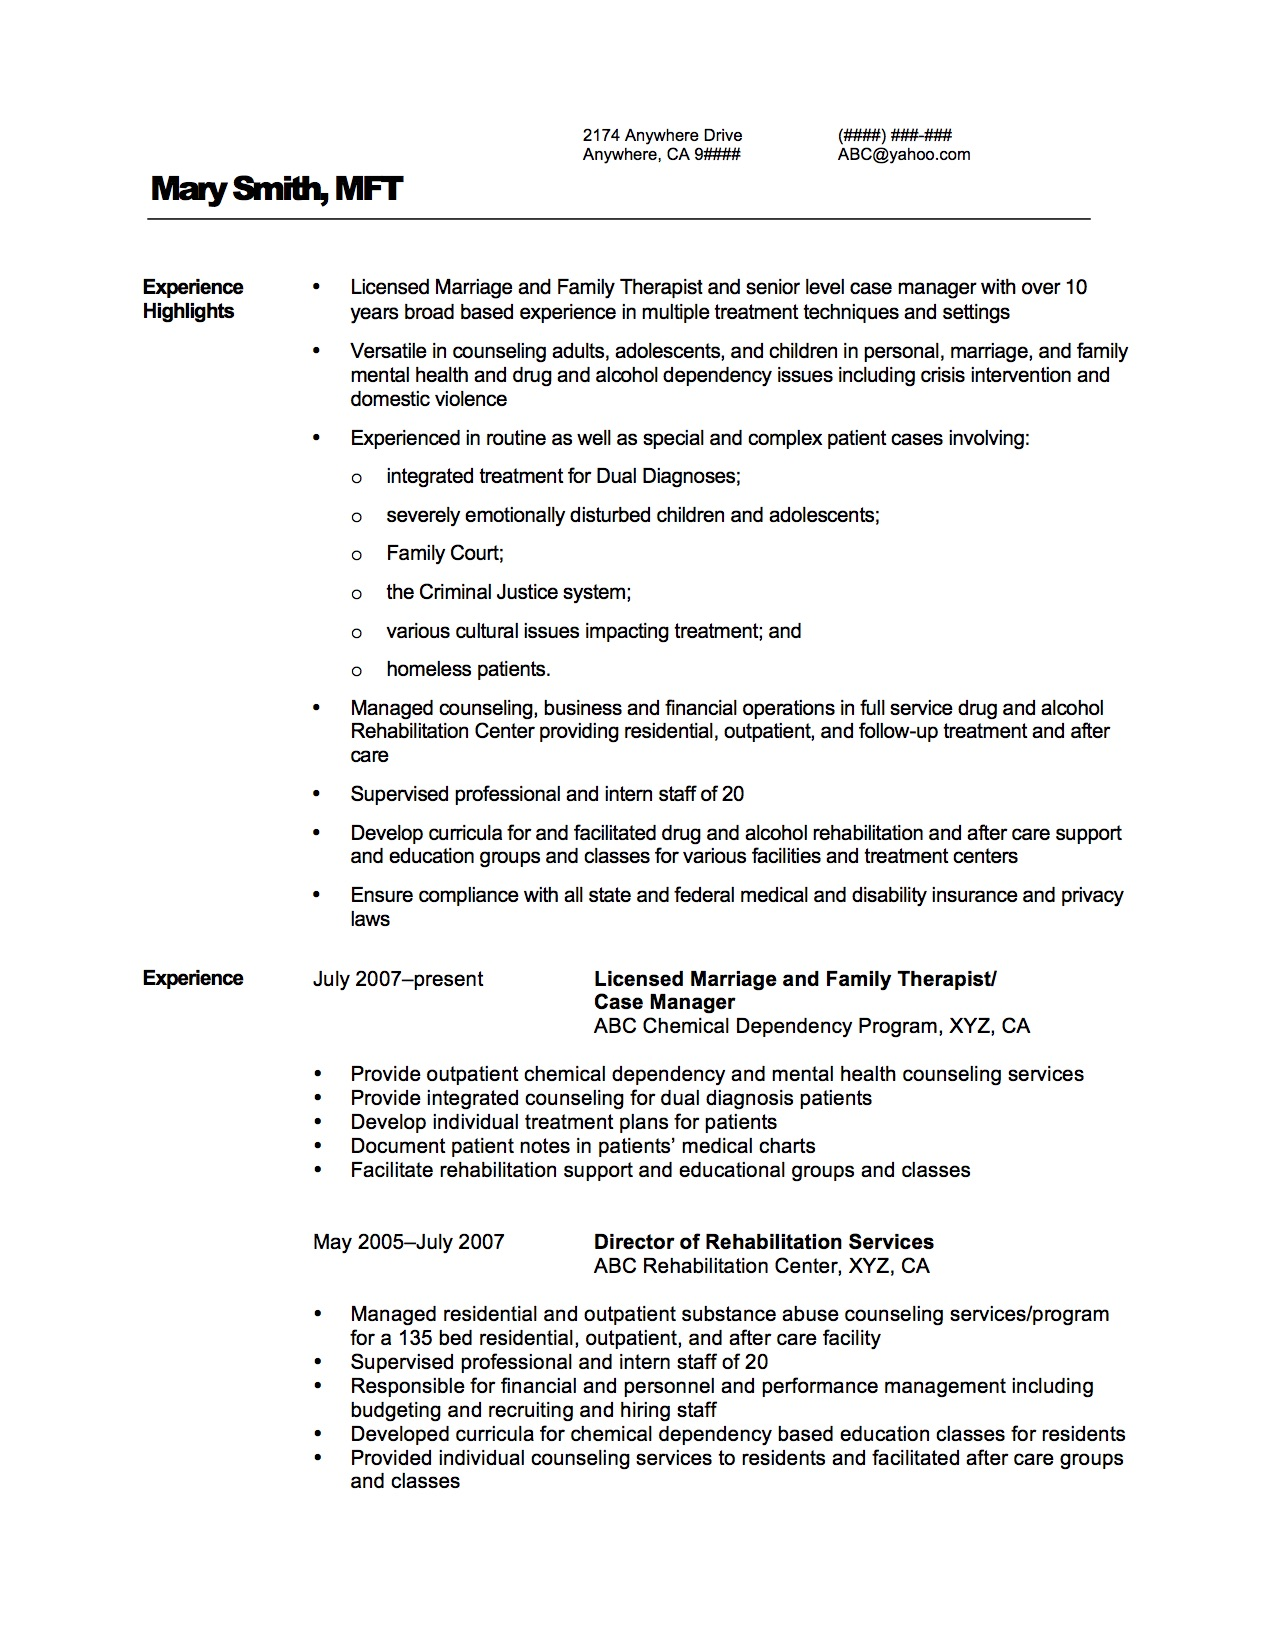 Click Here For A Resume Sample.  Sample Coaching Resume